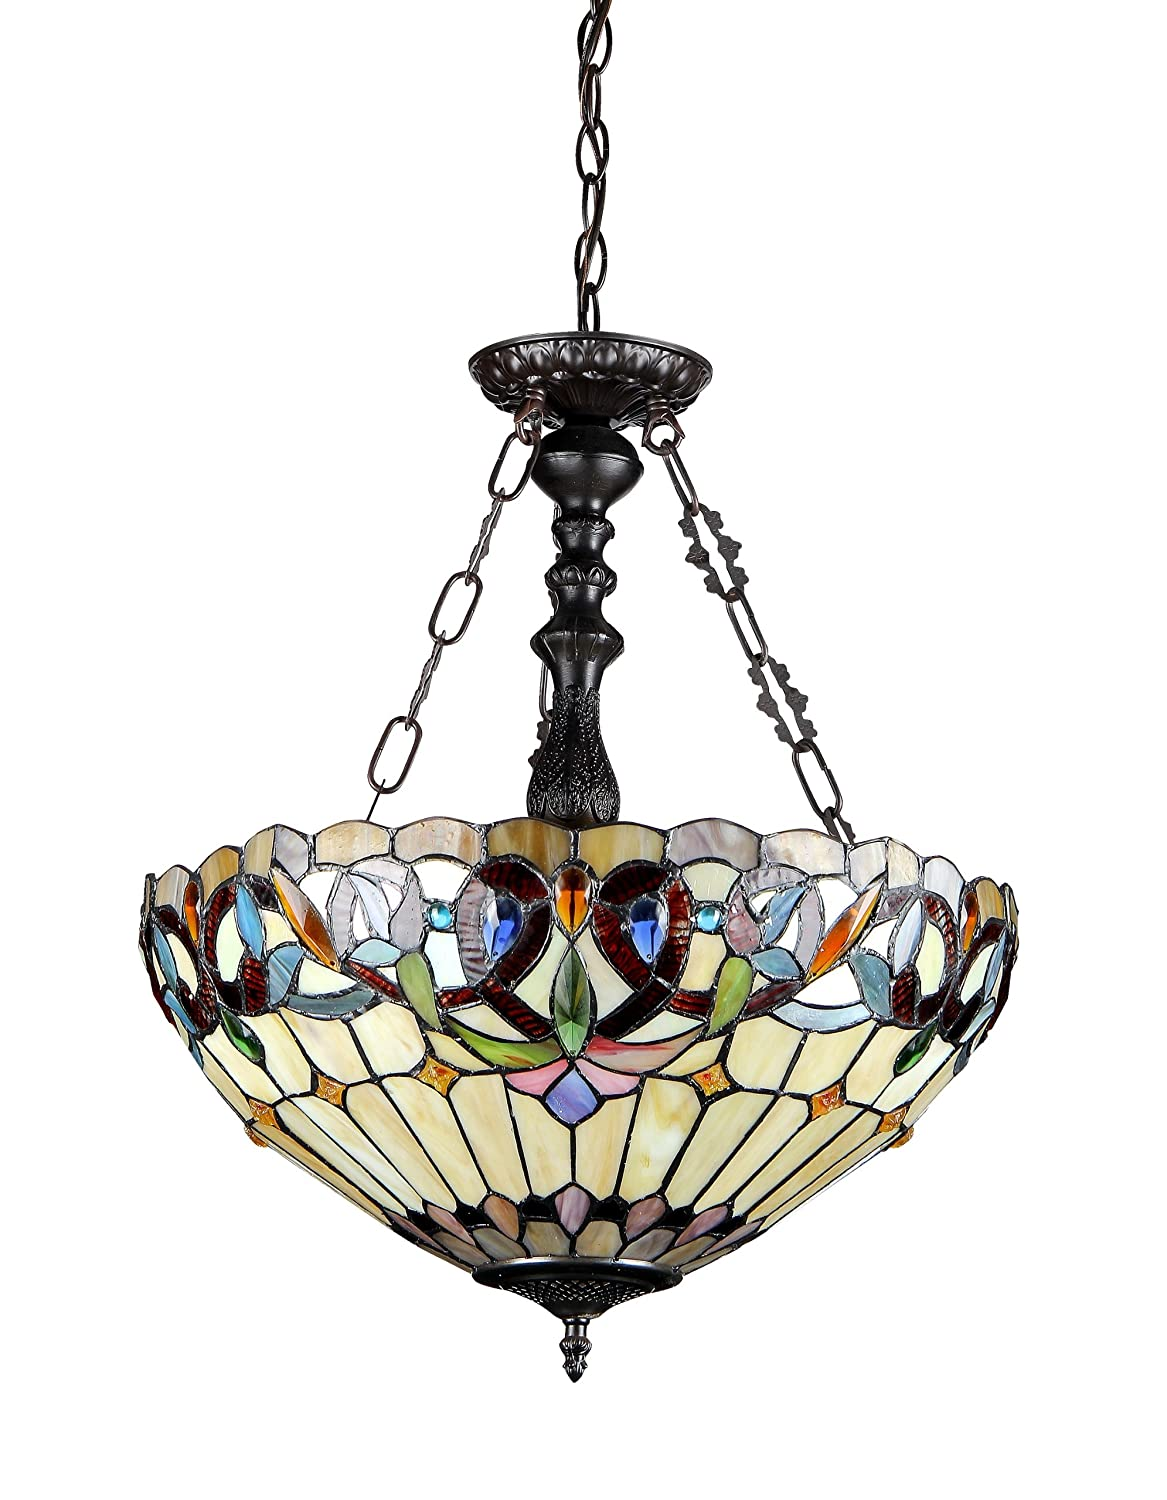 ceiling light interiors with design lighting art nouveau pendant type style tiffany hector image